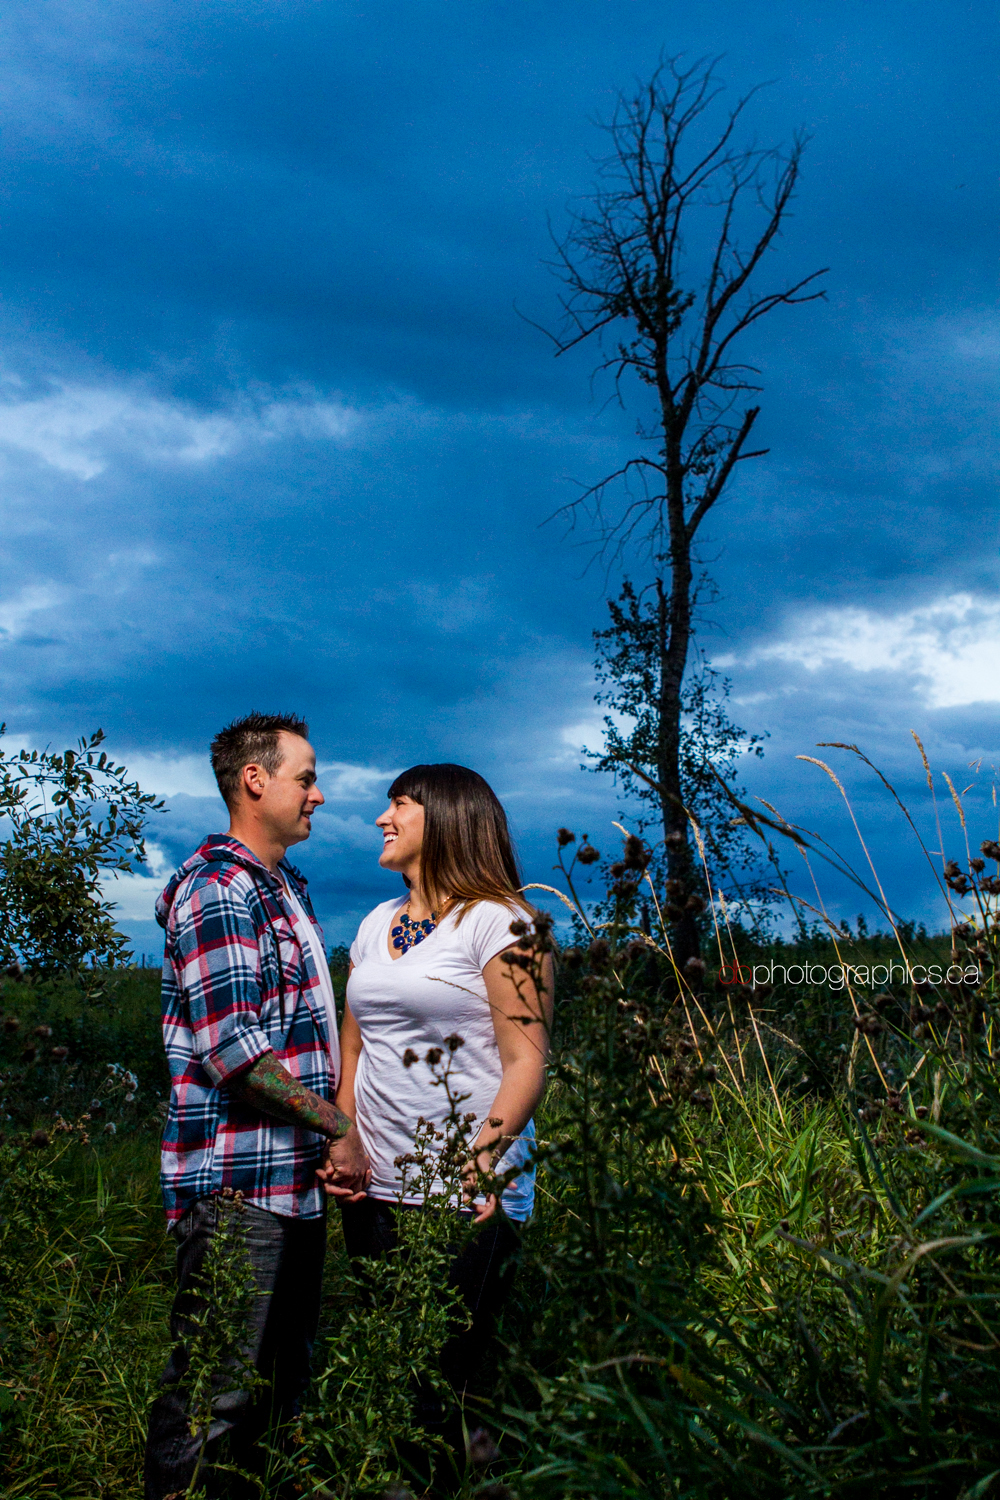 Rob & Alicia Engagement Shoot - 20130922 - 0067.jpg